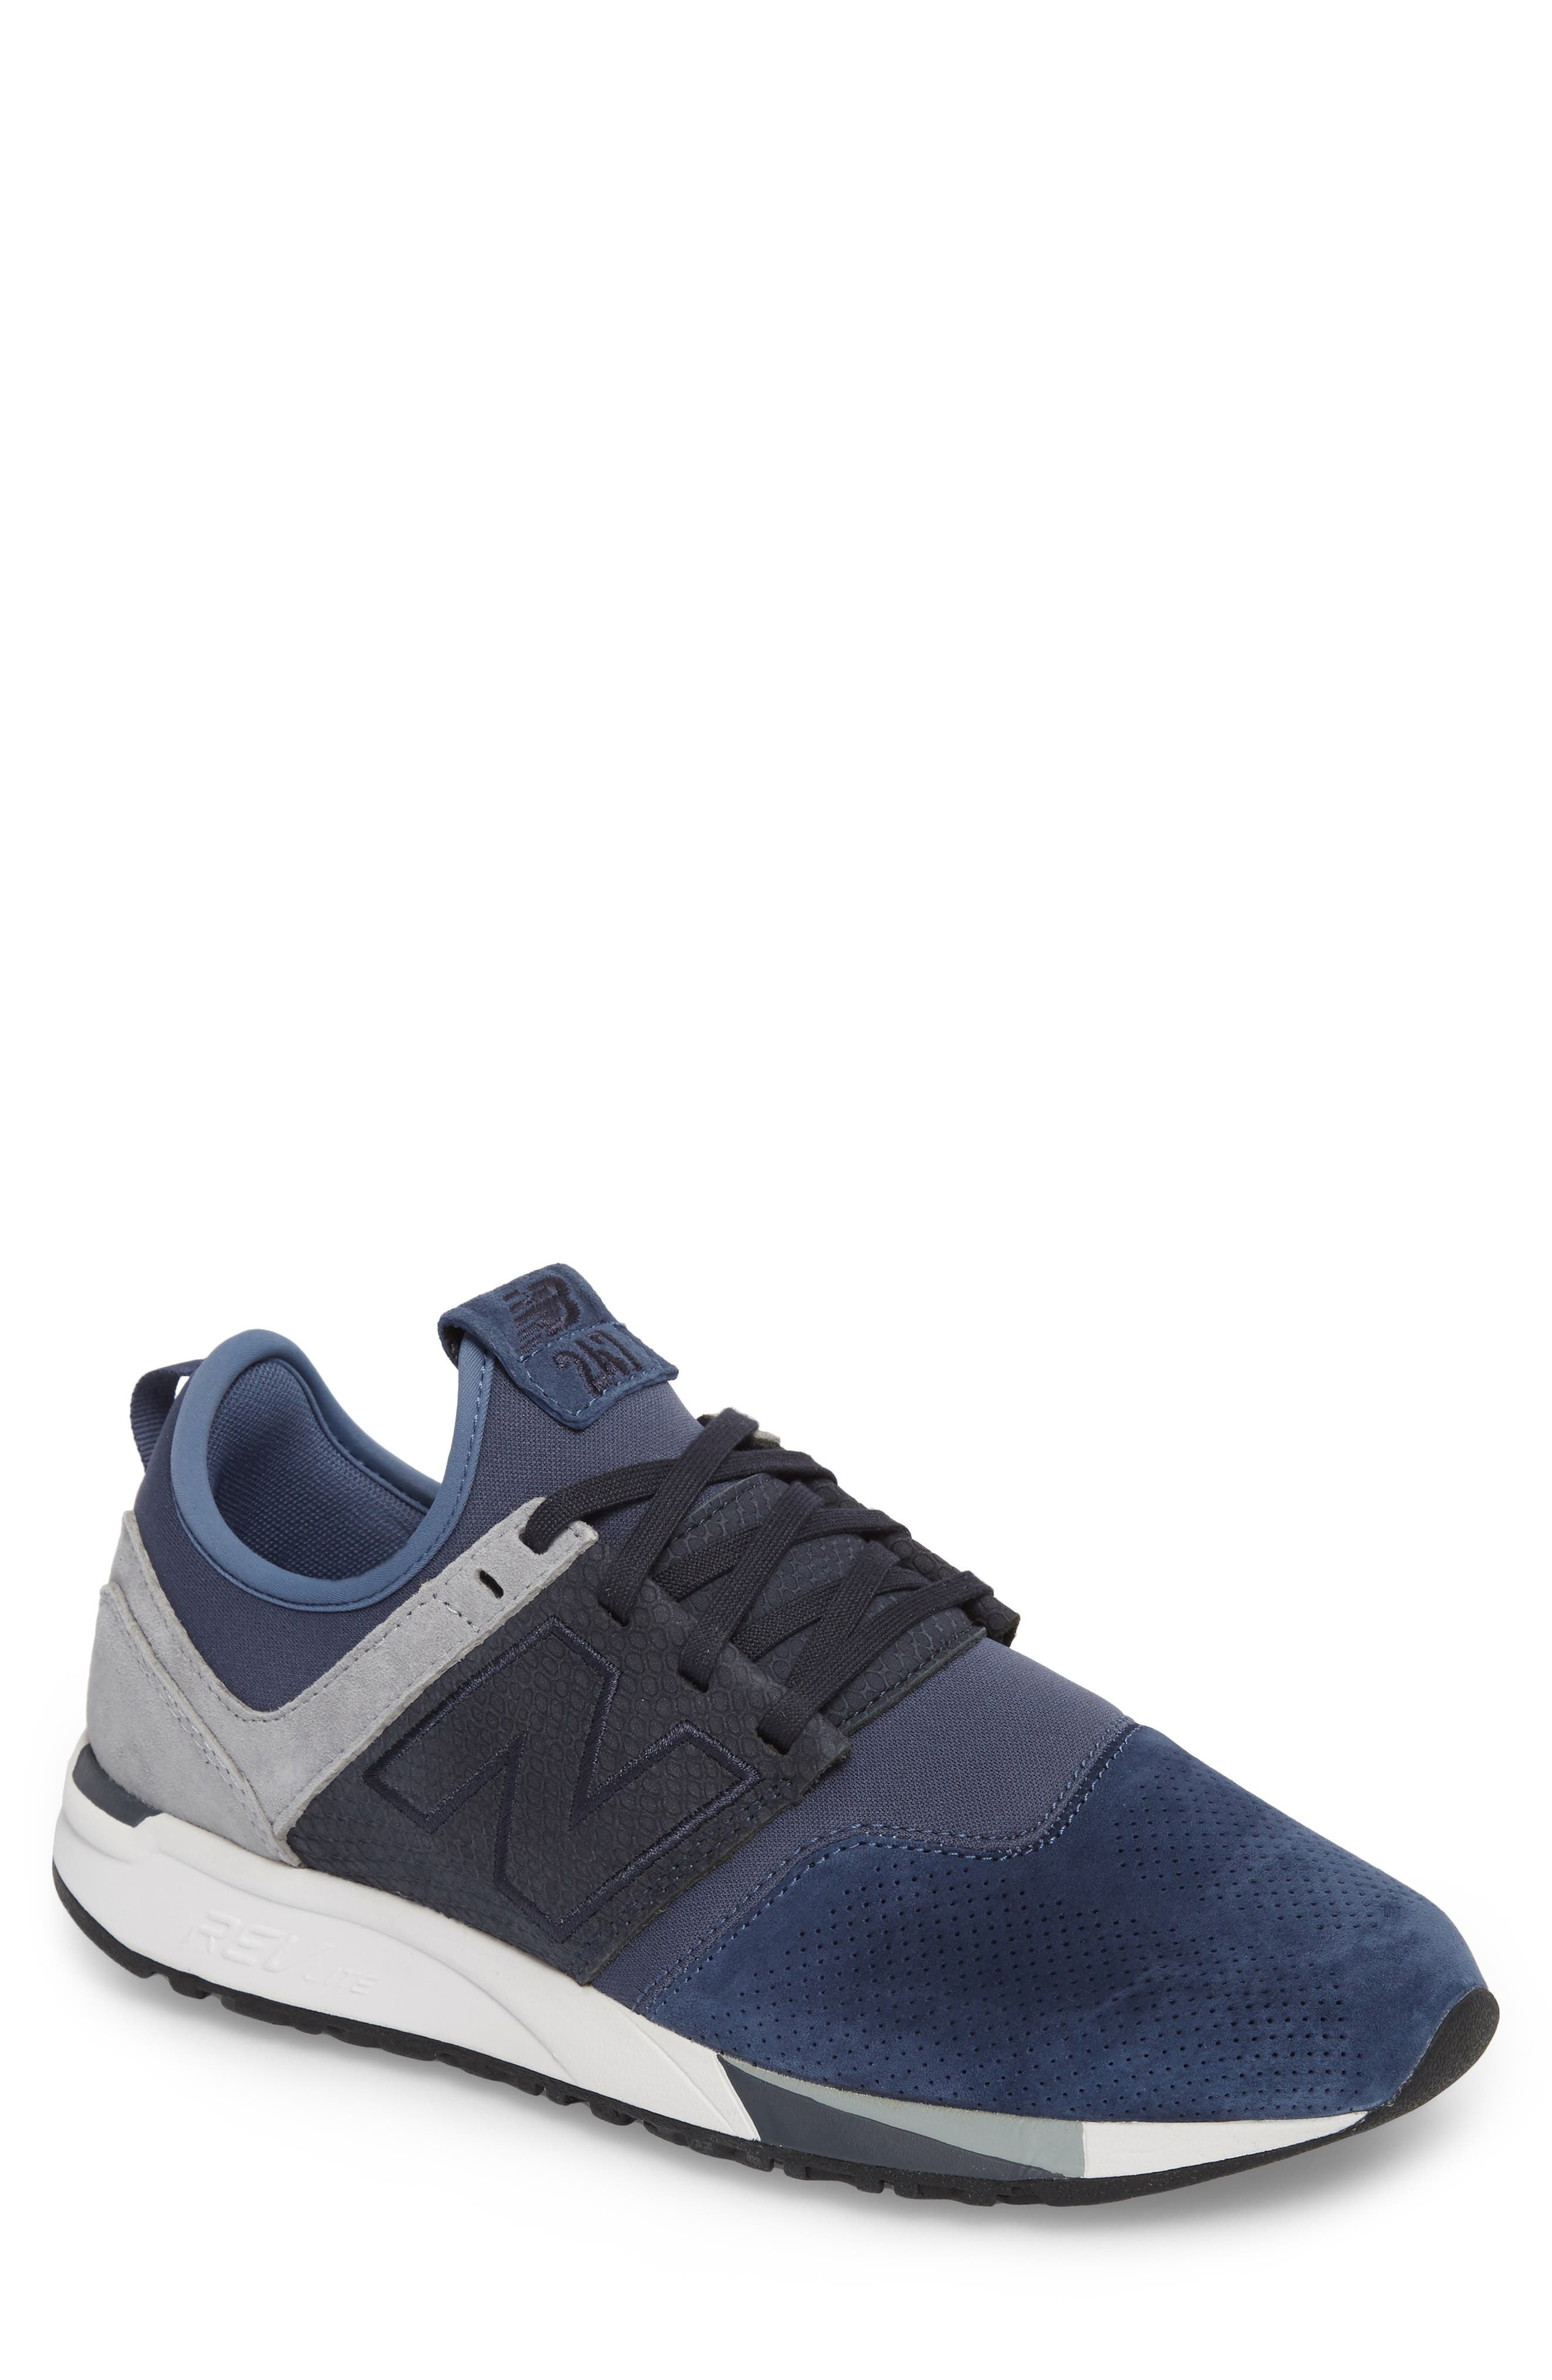 247 Luxe Sneaker,                             Main thumbnail 2, color,